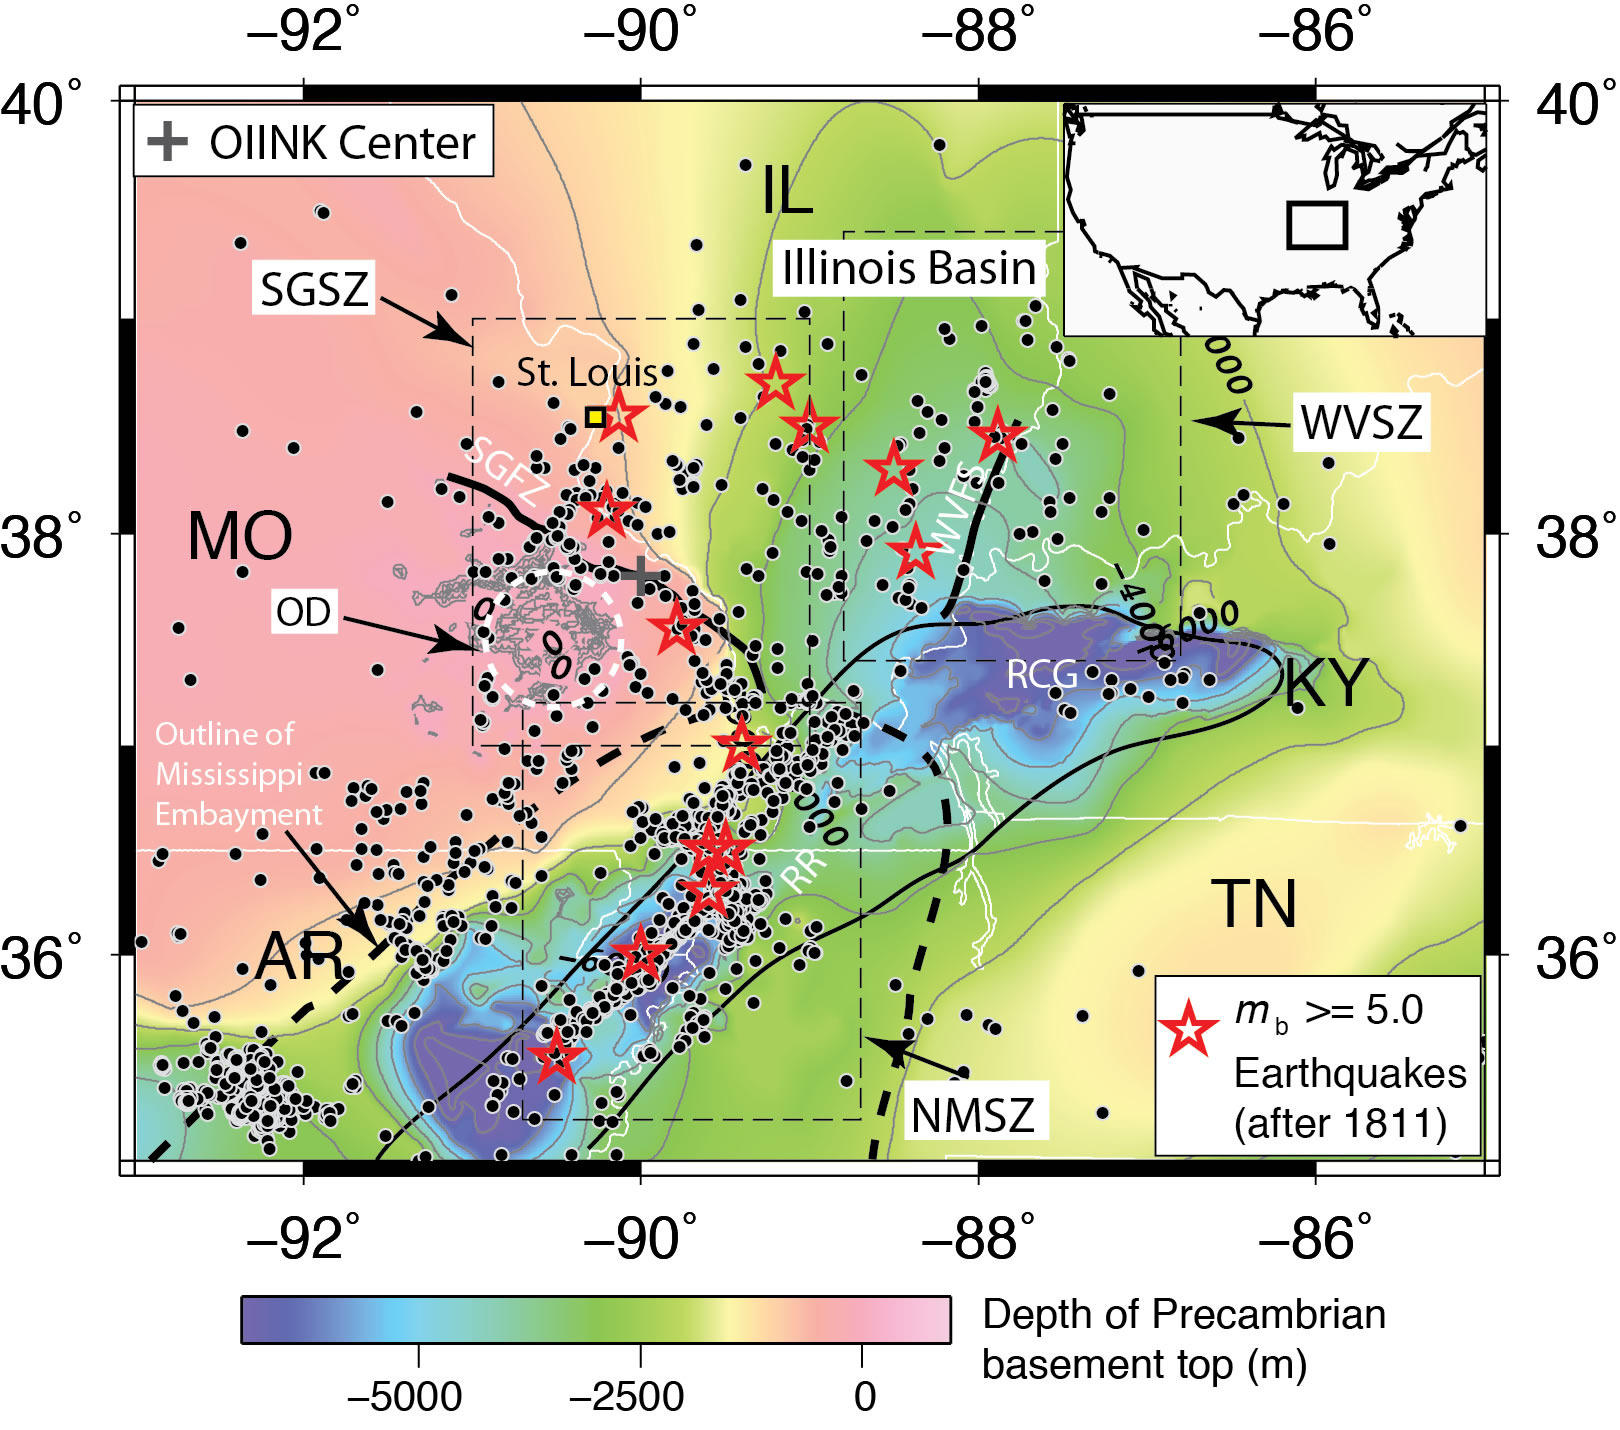 Geologists Record Widespread Activity On Ste Genevieve Seismic Zone